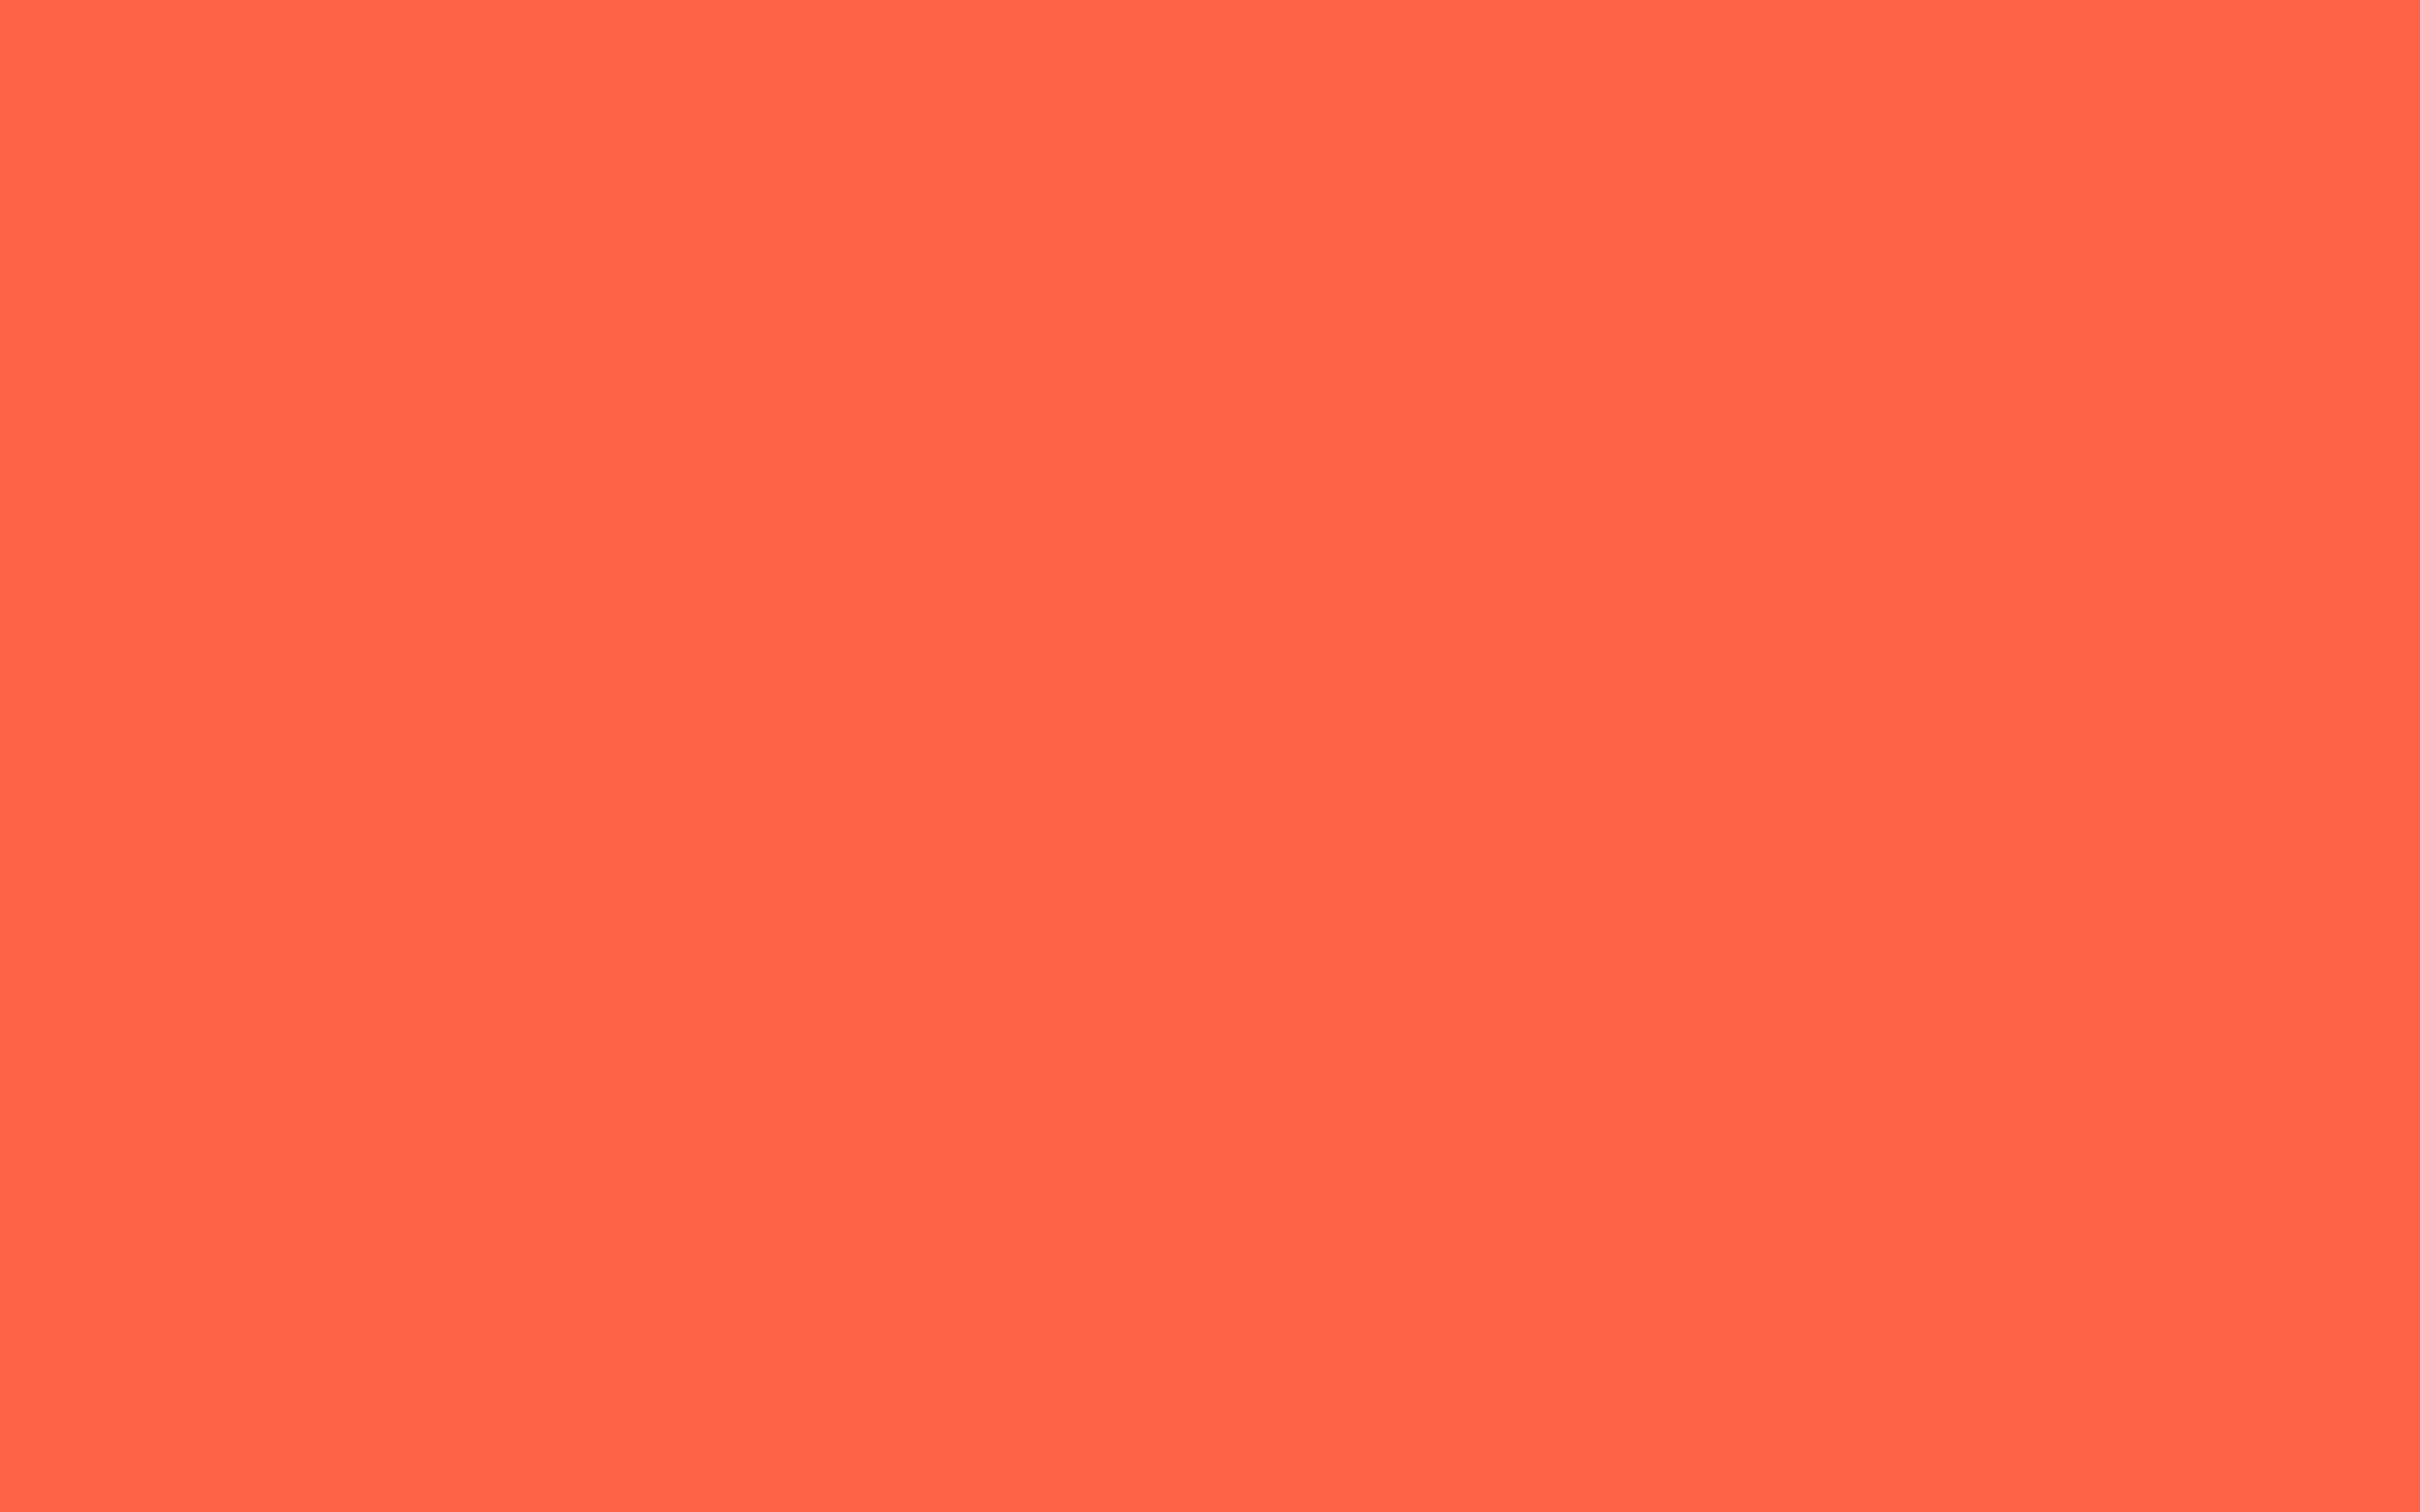 2560x1600 Tomato Solid Color Background